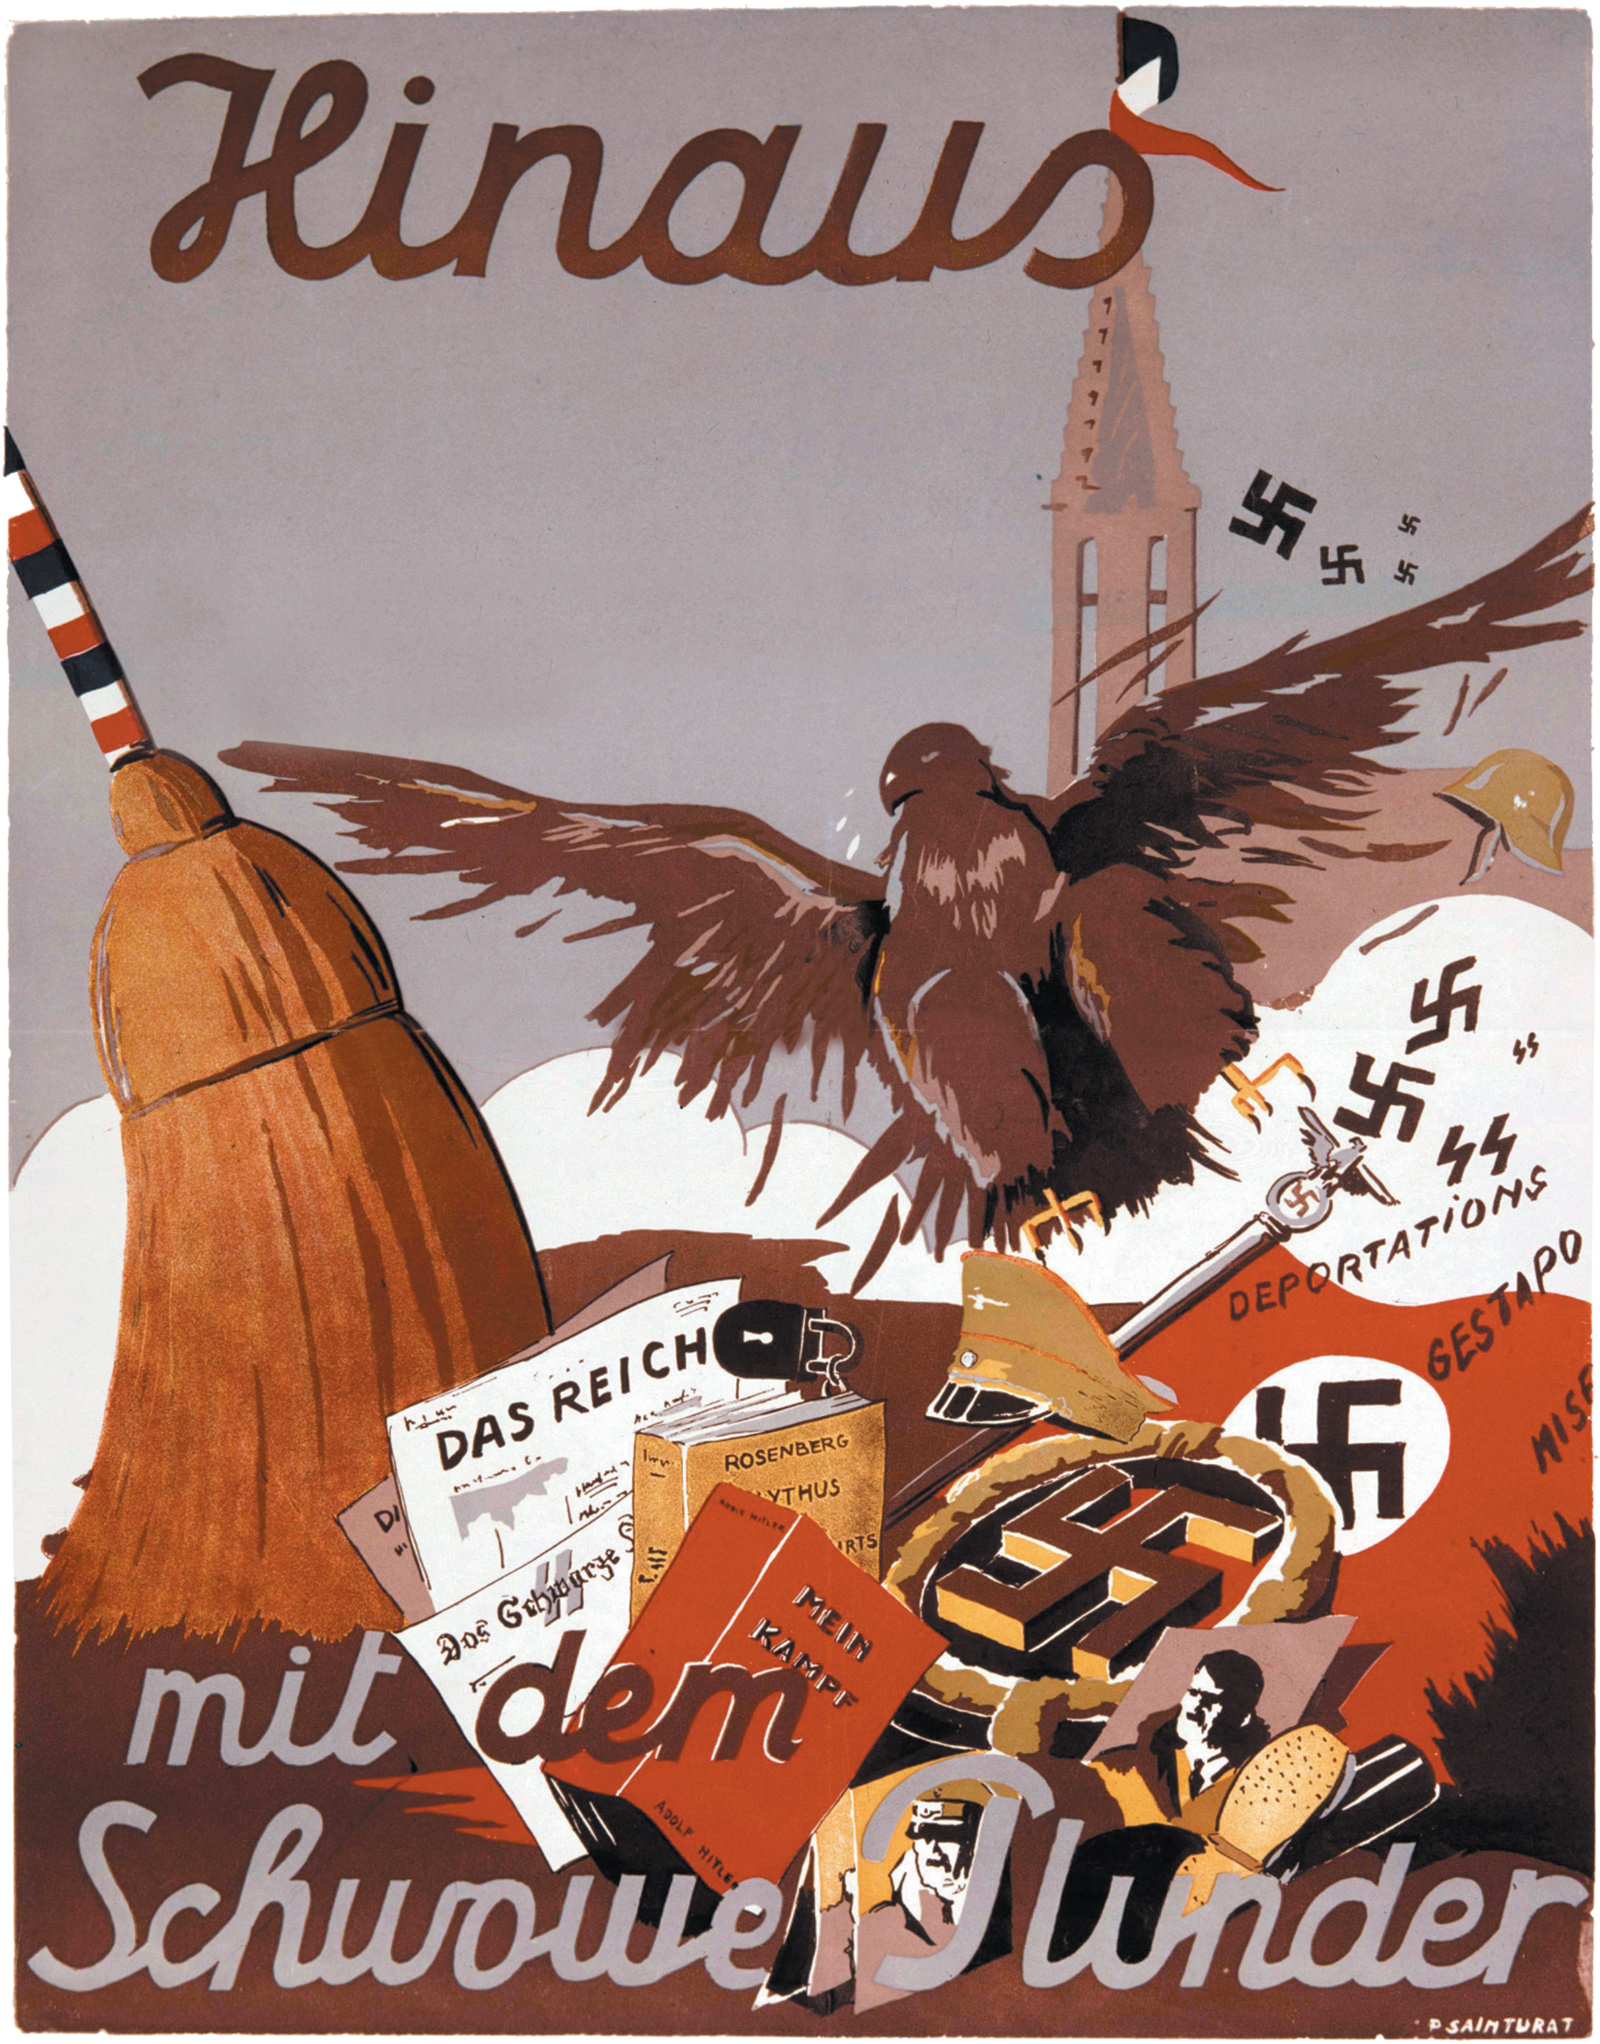 An anti-German poster by P. Sainturat saying 'Out with this Swabian Junk' and showing a French broom, with a tricolored handle, sweeping away Nazism after the liberation of France, 1945